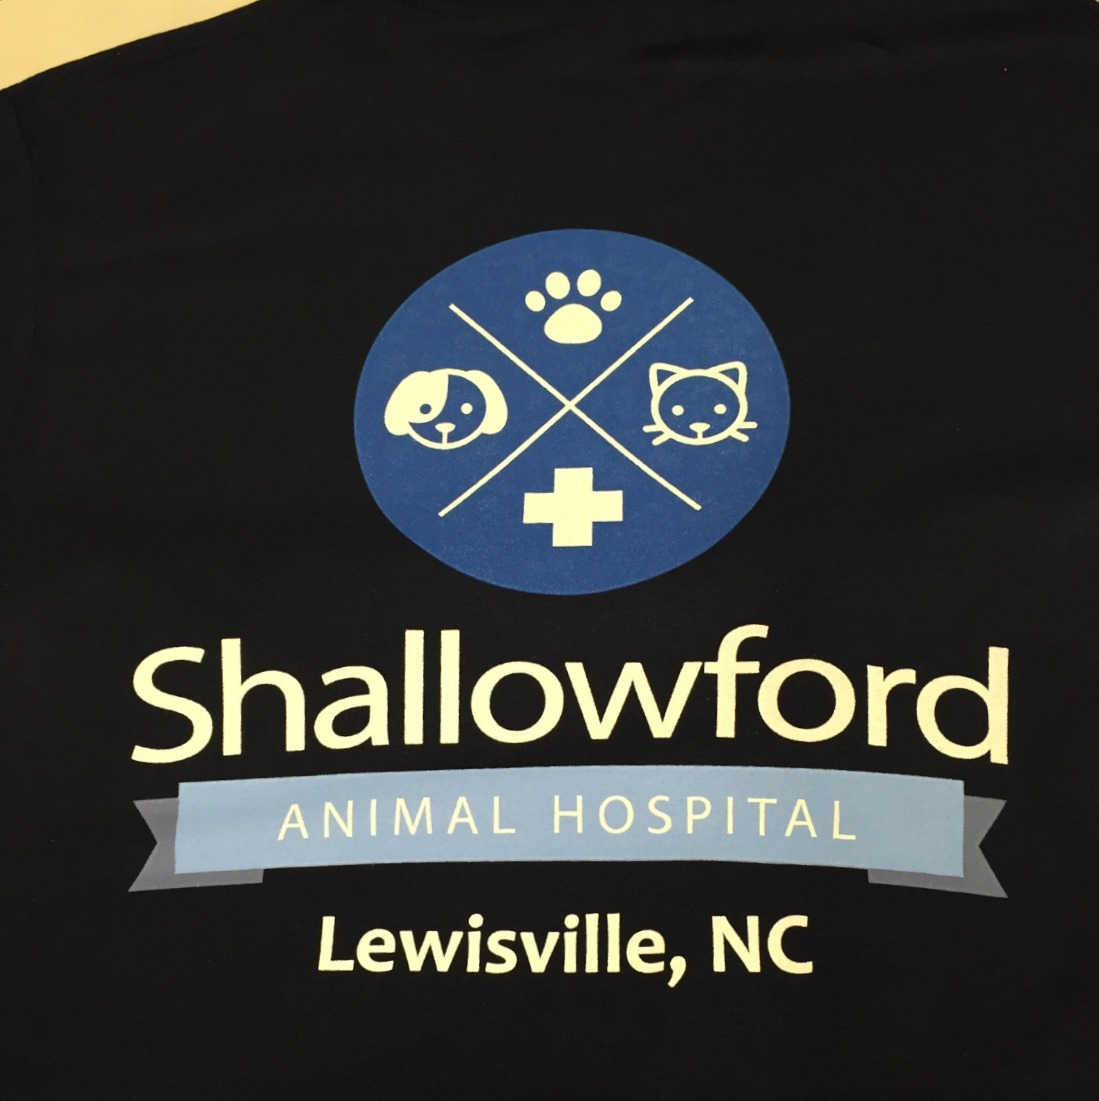 Shallowford Animal Hospital